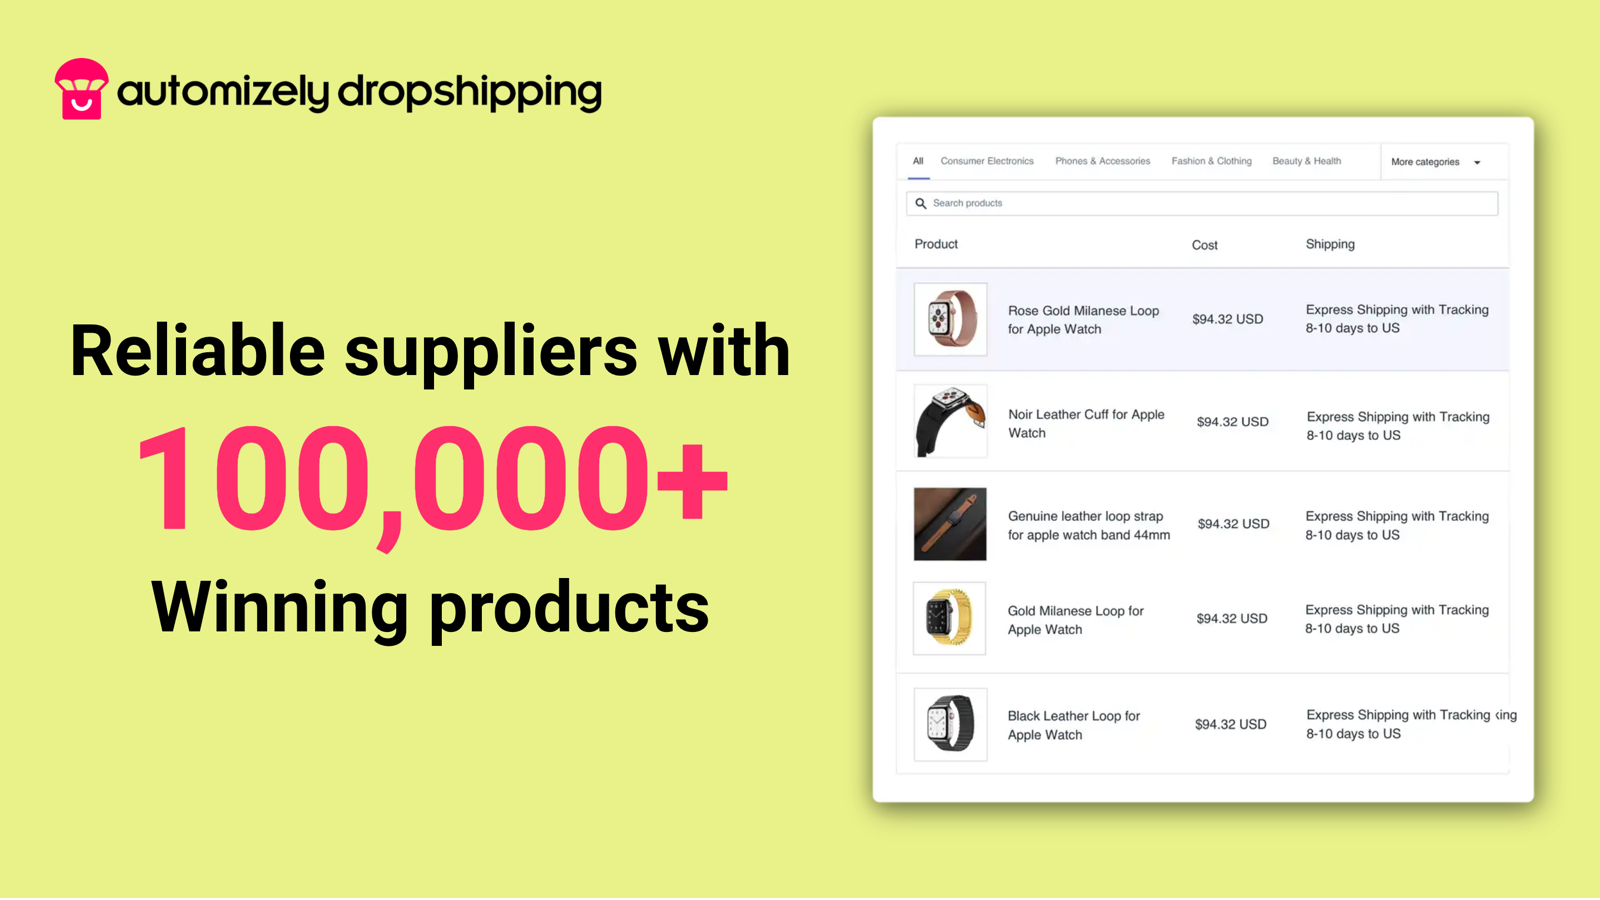 Best-quality products from verified suppliers